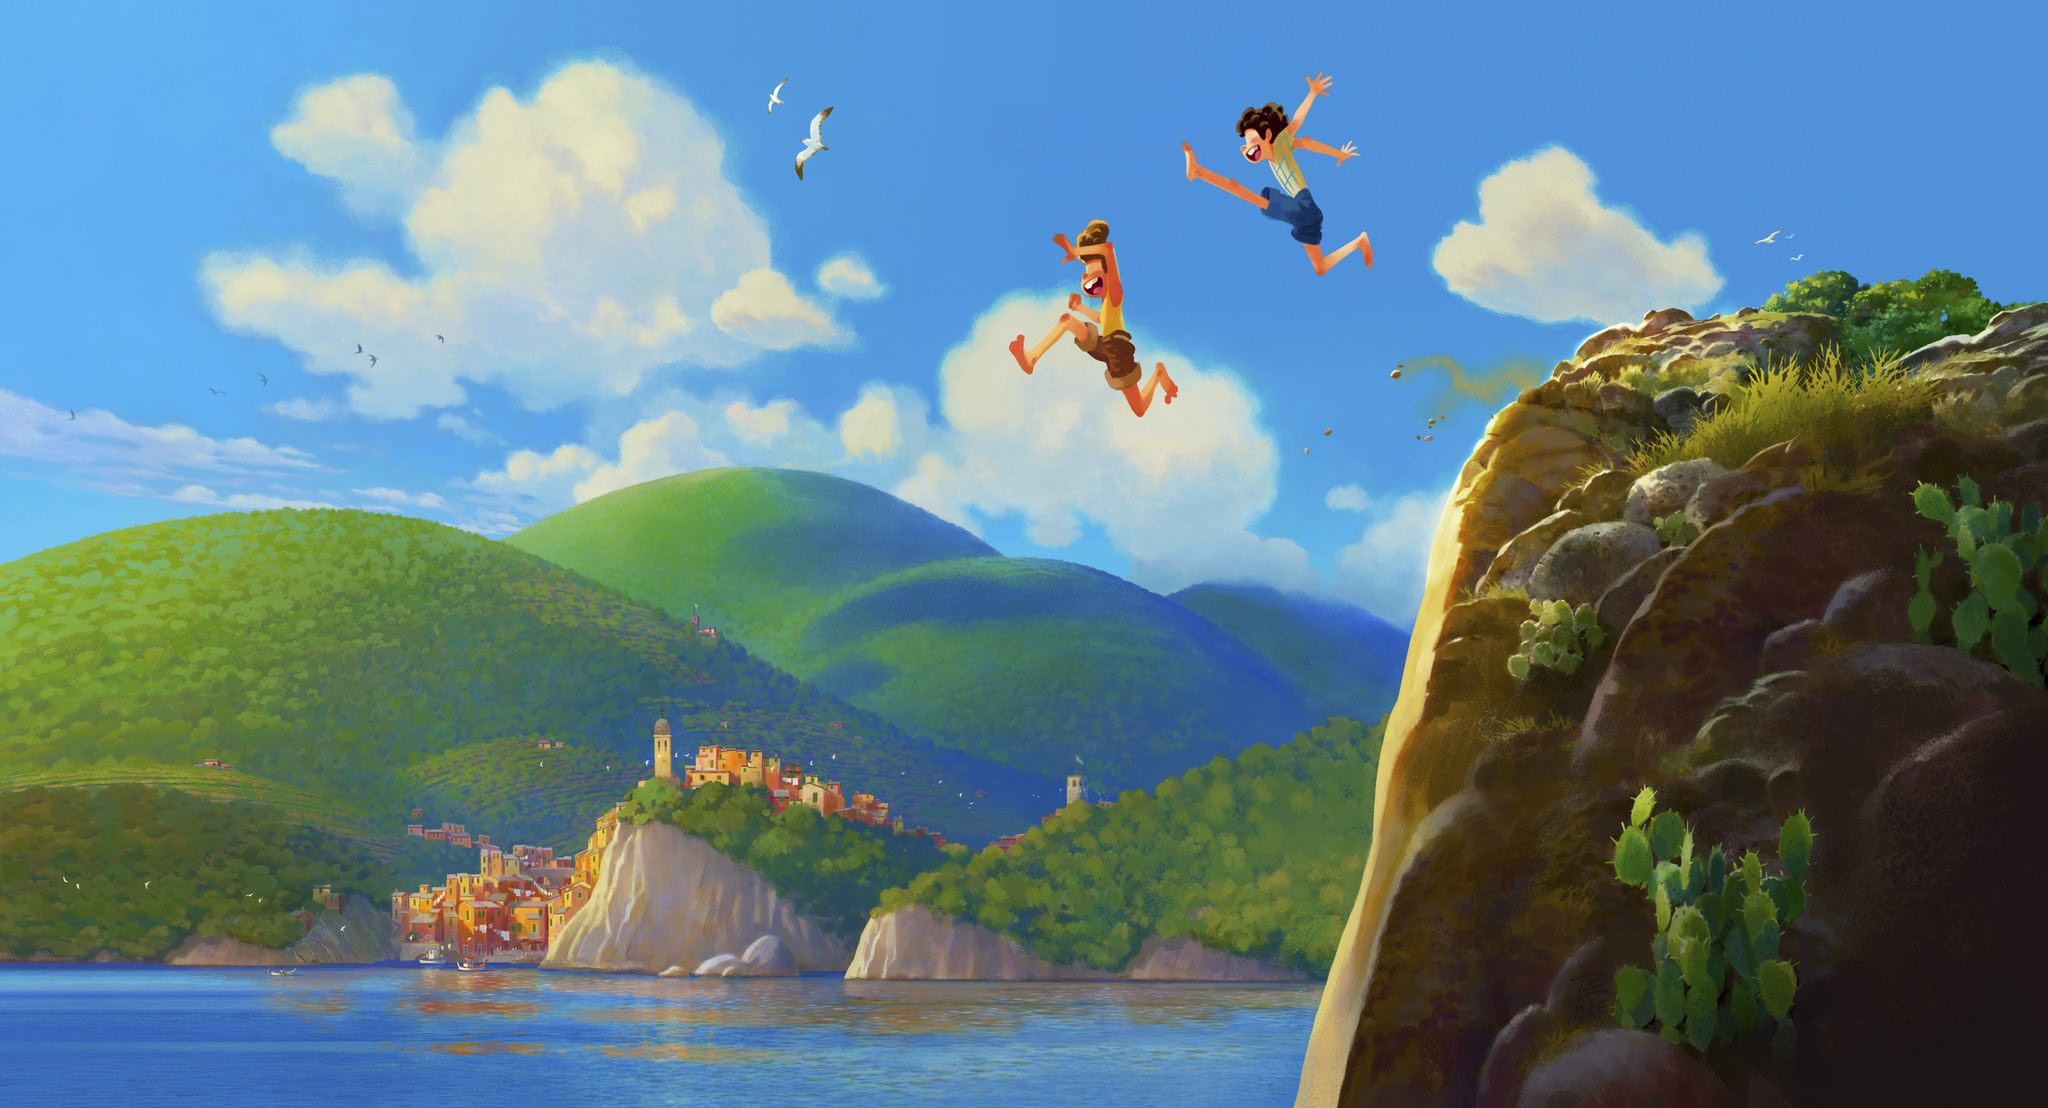 Pixar's Next Feature Film is 'Luca,' a Coming-of-Age Story Set on the Italian Riviera